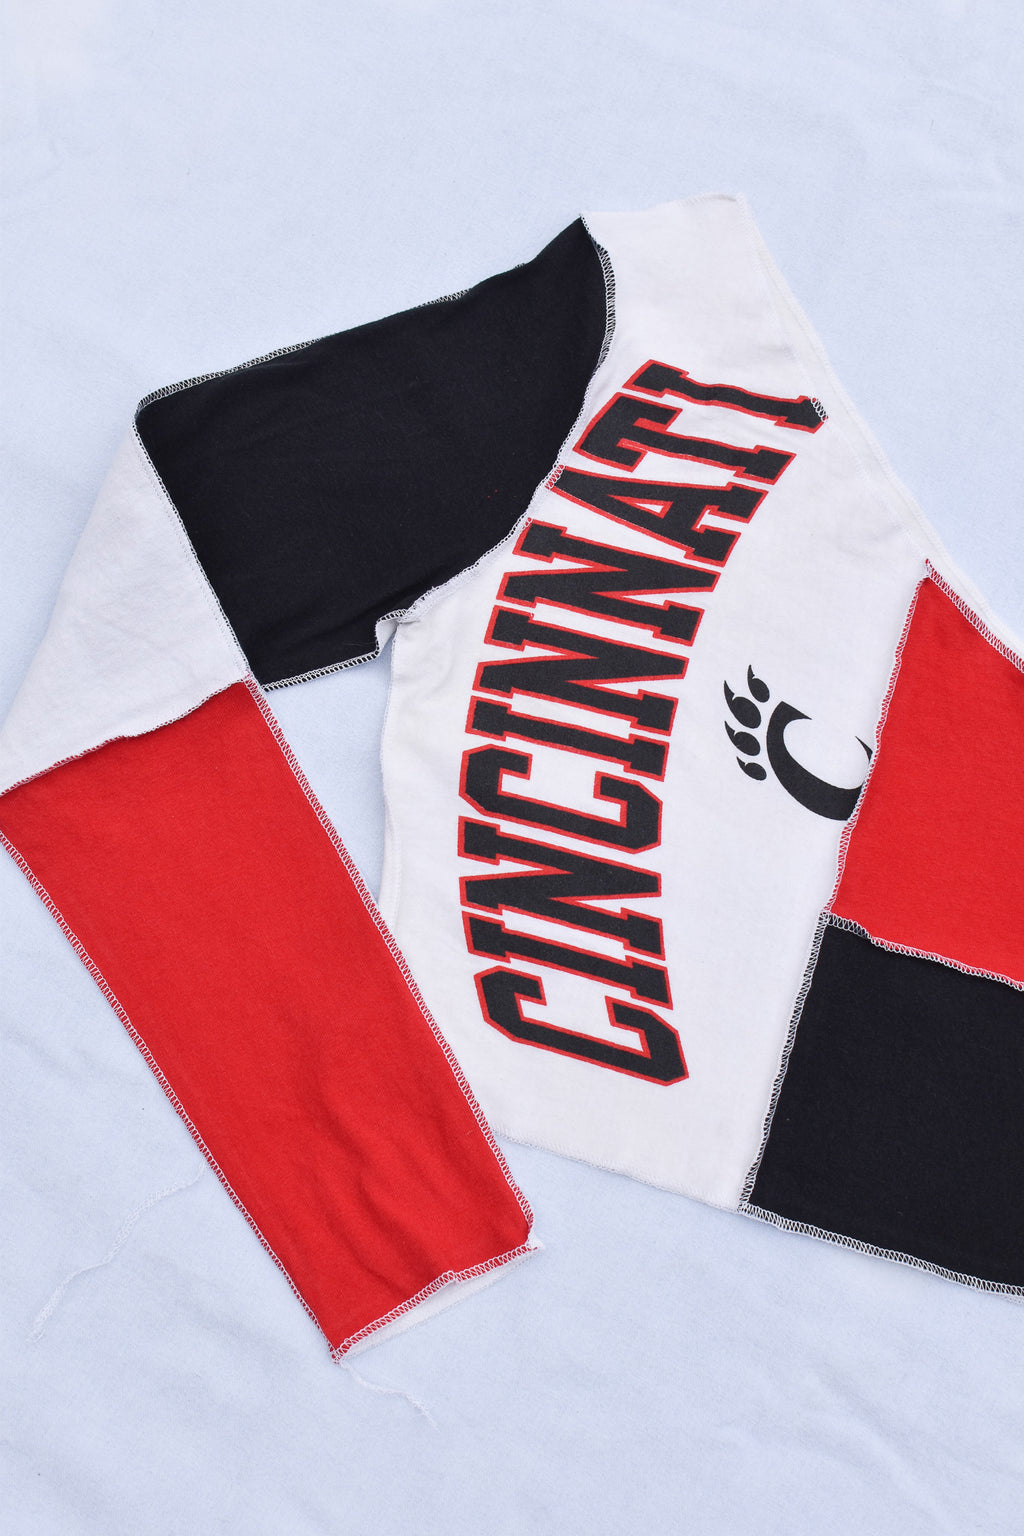 Upcycled Red Wings Chain Shirt